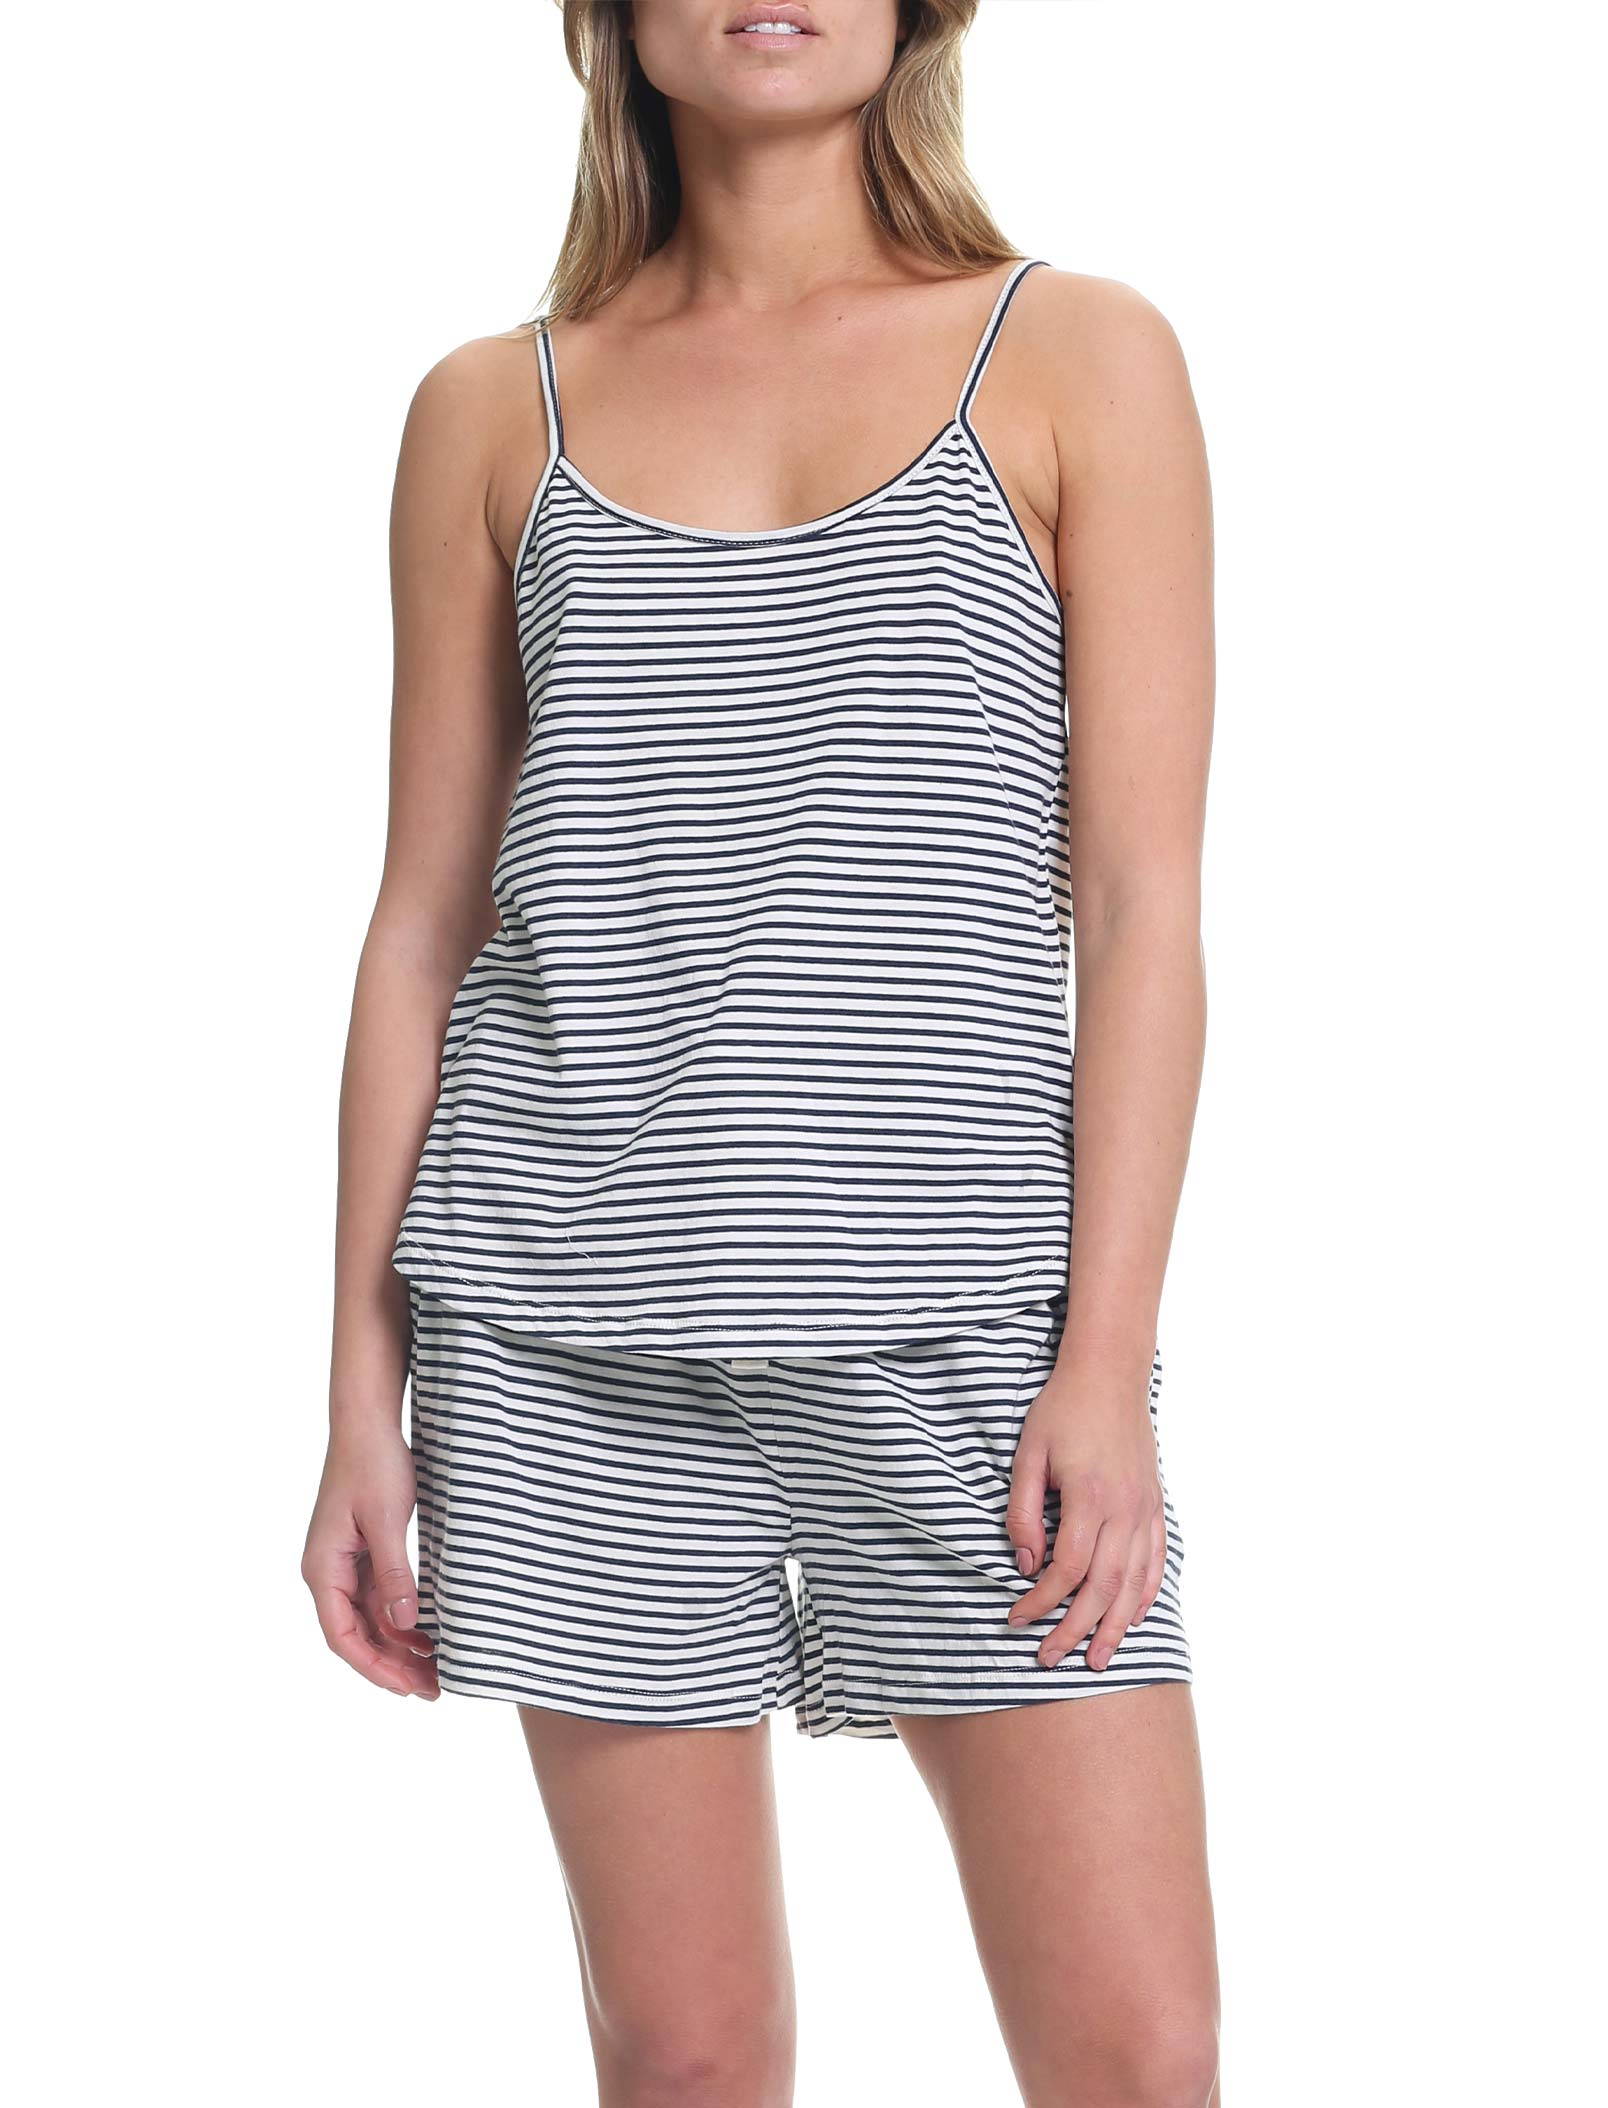 Organic Knit Cami in Navy Stripe